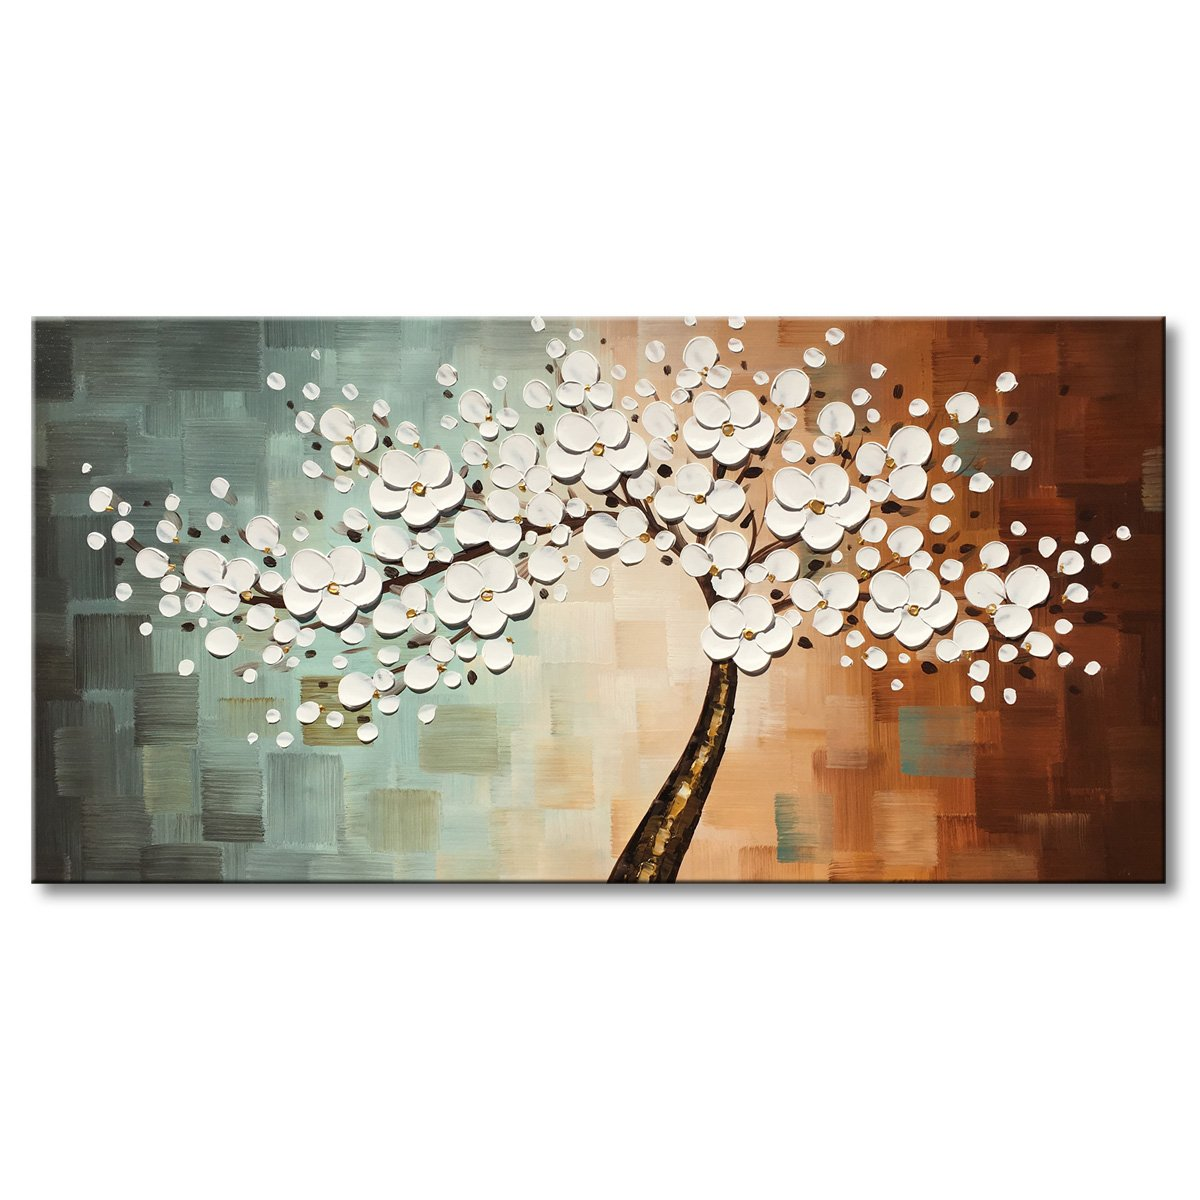 Everfun Art Large White Flower Oil Painting on Canvas Hand Painted Floral Wall Art Abstract Plum Blossom Picture Modern Artwork Decor fro Living Room Framed Ready to Hang 60x30 by EVERFUN ART